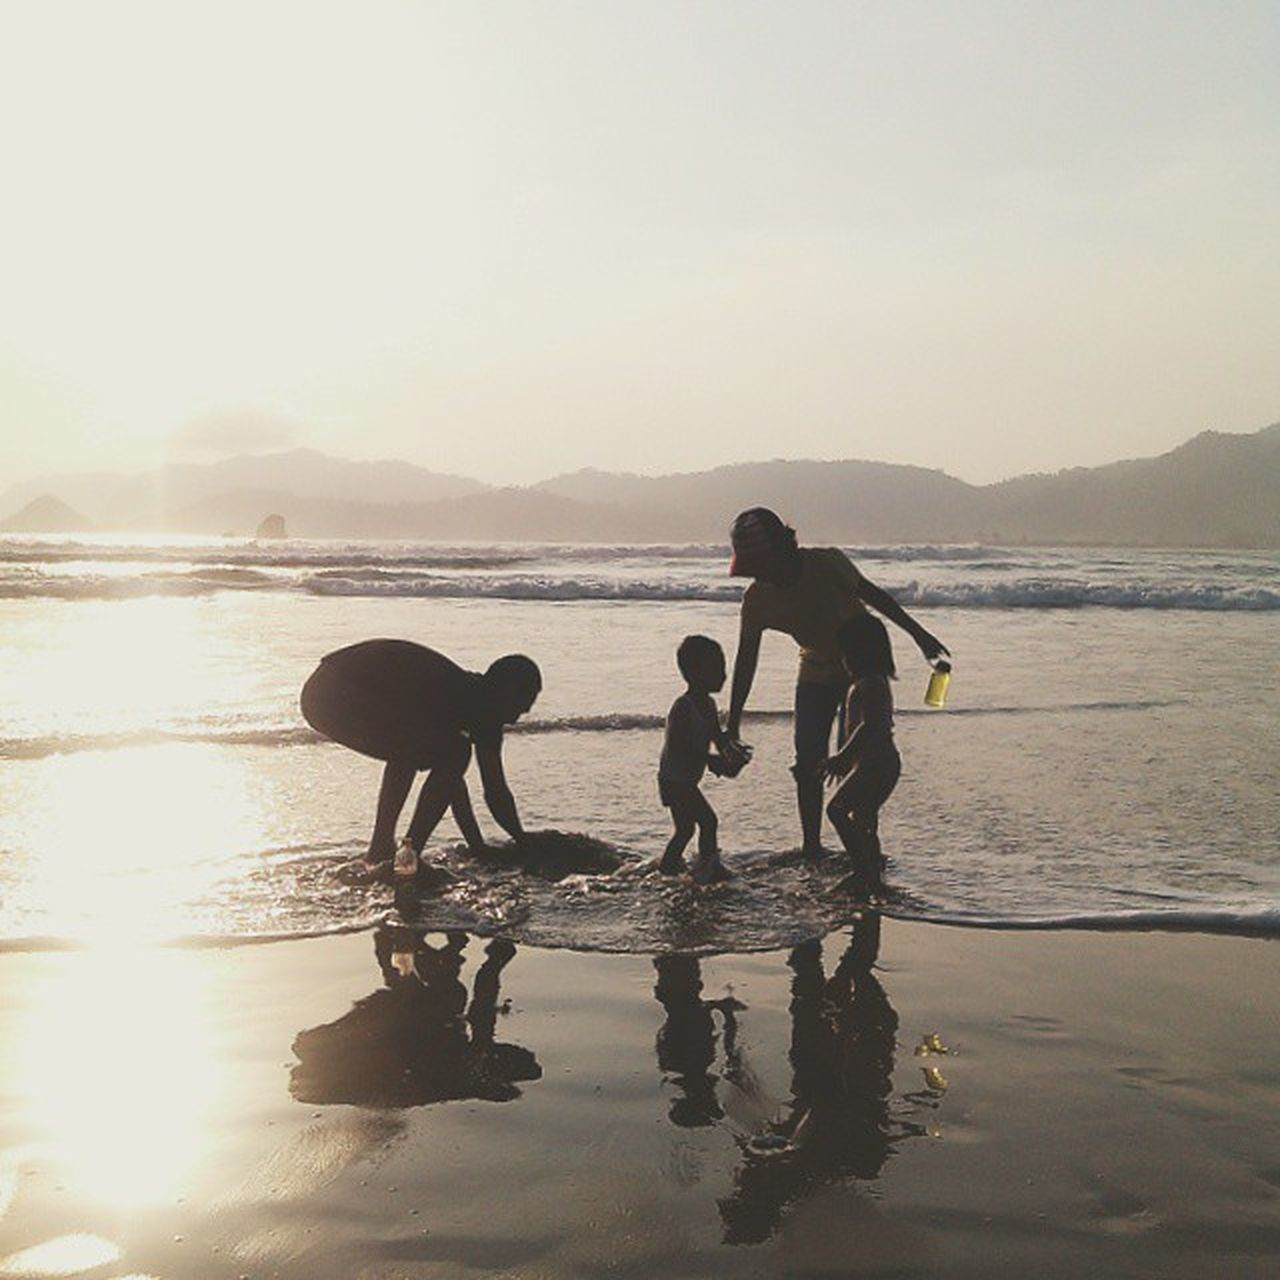 water, real people, silhouette, men, nature, leisure activity, lifestyles, sea, togetherness, two people, outdoors, sky, sunset, full length, beach, scenics, beauty in nature, standing, occupation, friendship, day, extreme sports, people